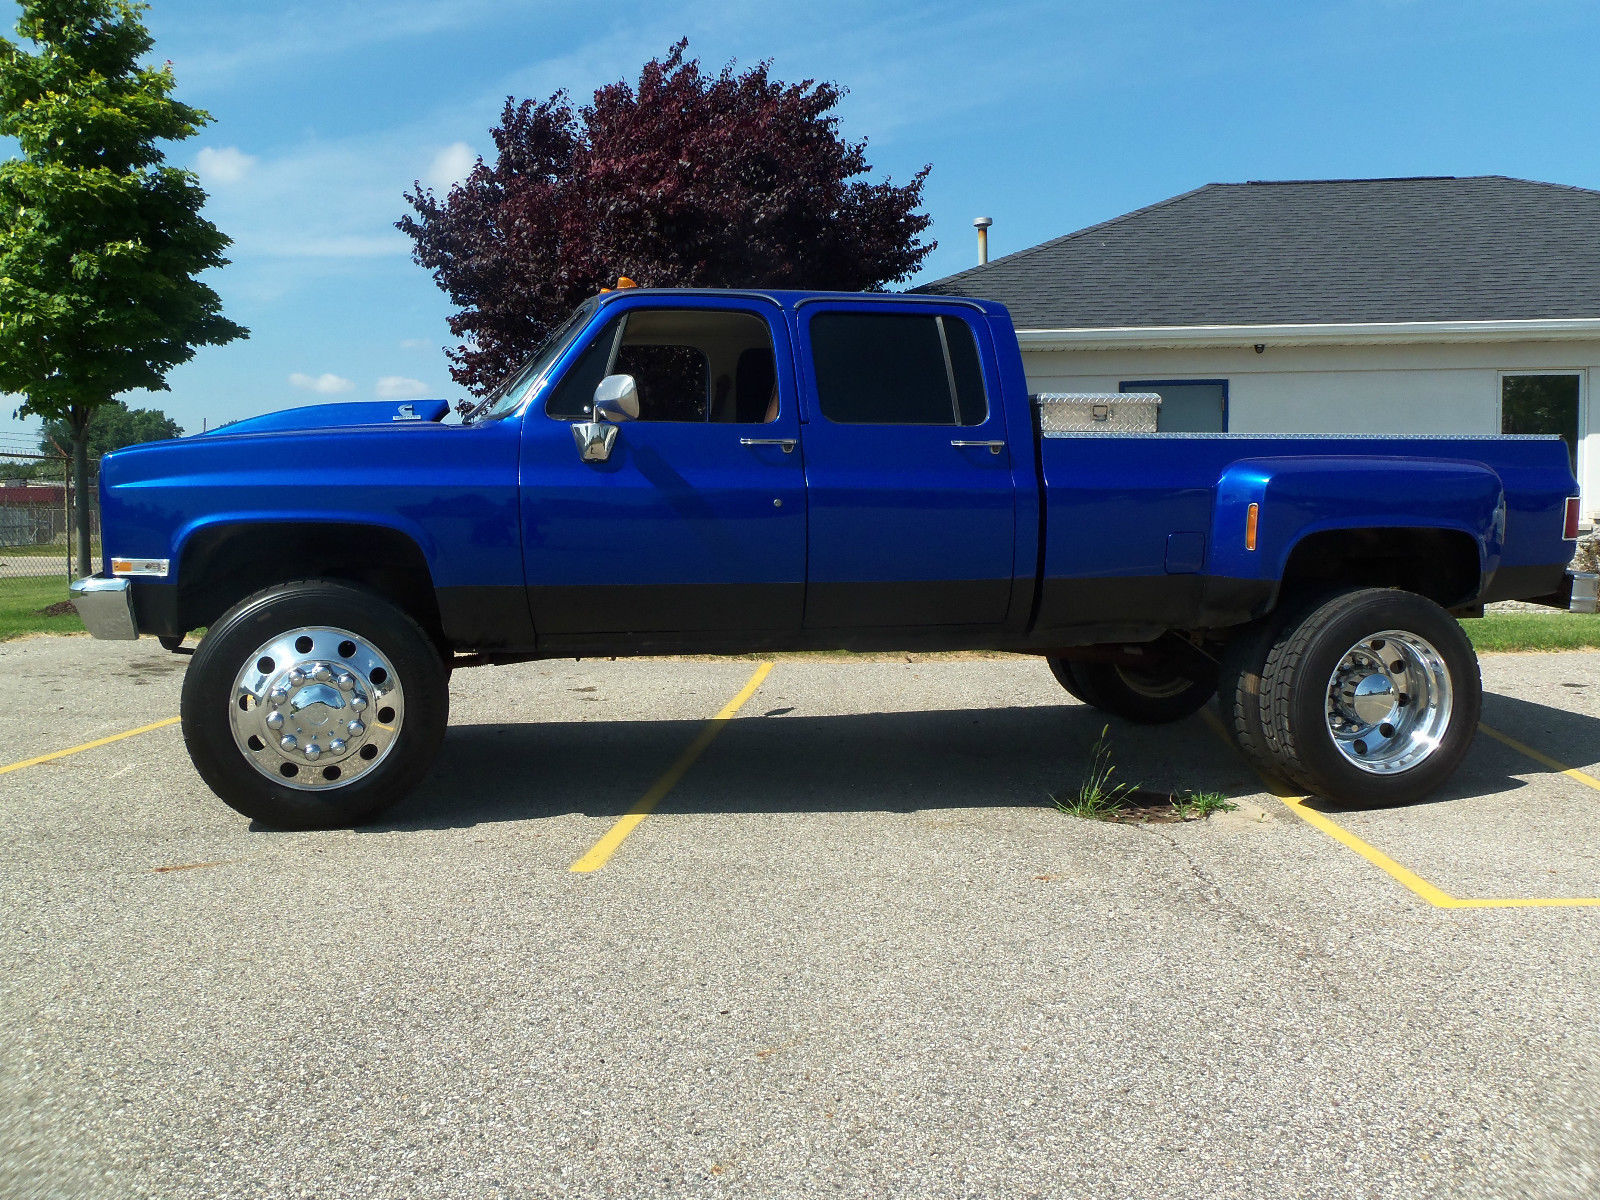 Chevy /GMC : Lowered Slammed 3500 Bagged Dually 1990 Pick up ...